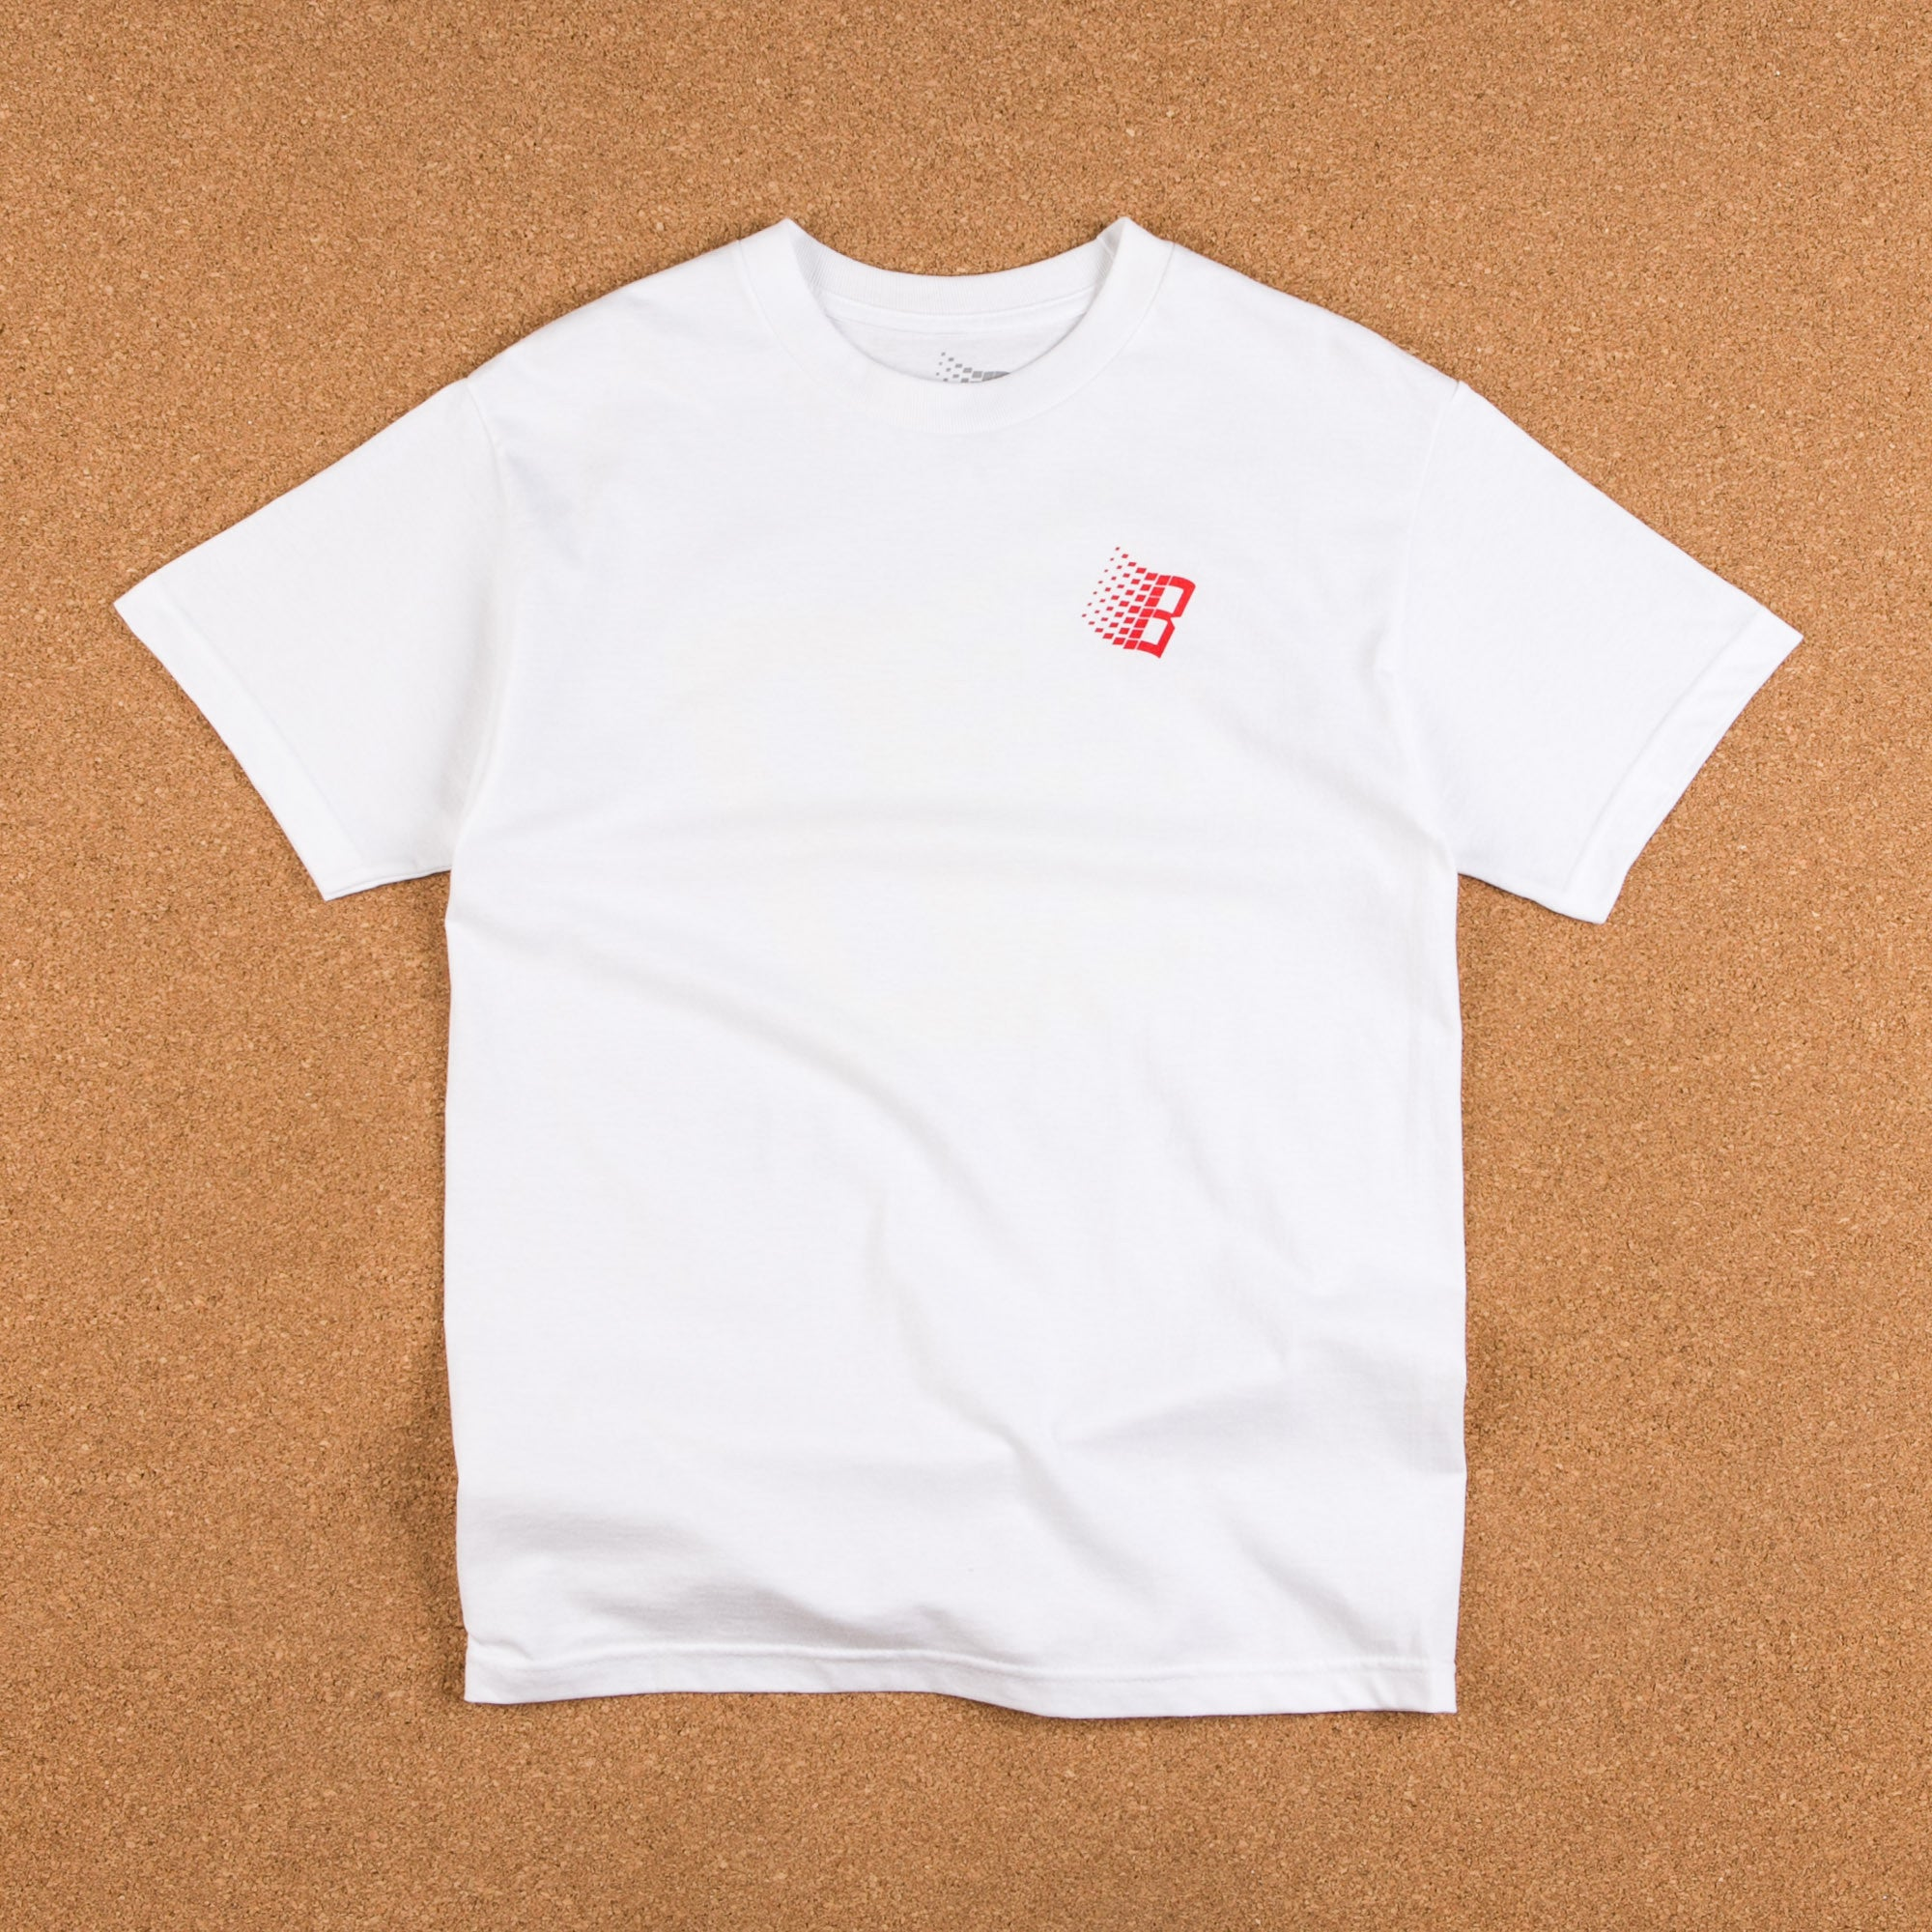 Bronze 56k Bronze Logo T-Shirt - White / Primary